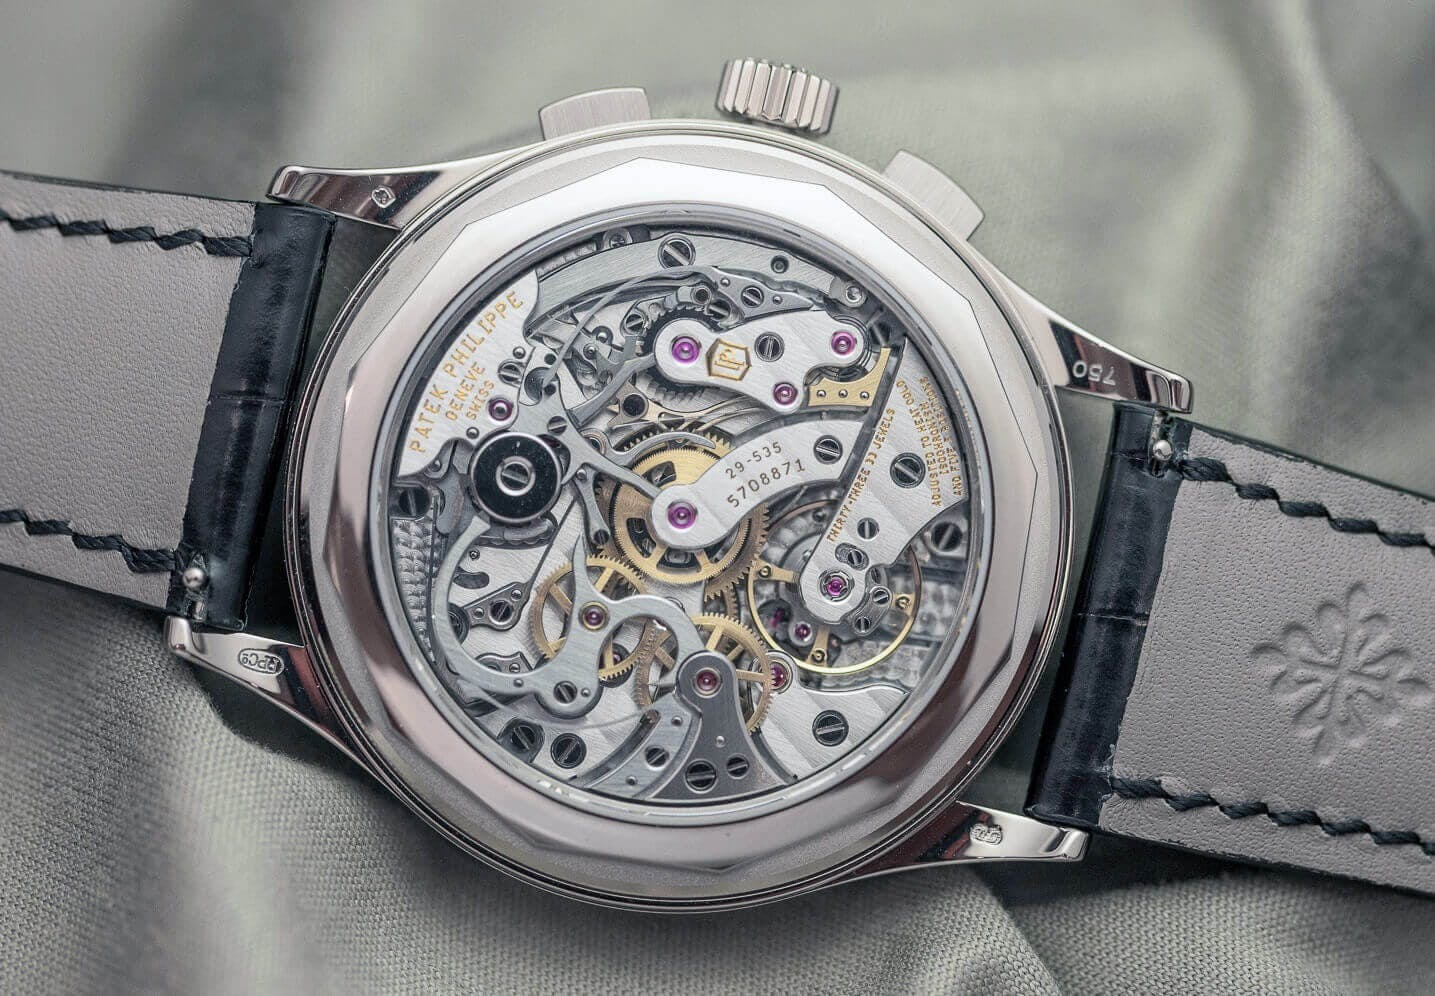 Almost impossible to fake: Patek Philippe Handwound Chronograph Movement